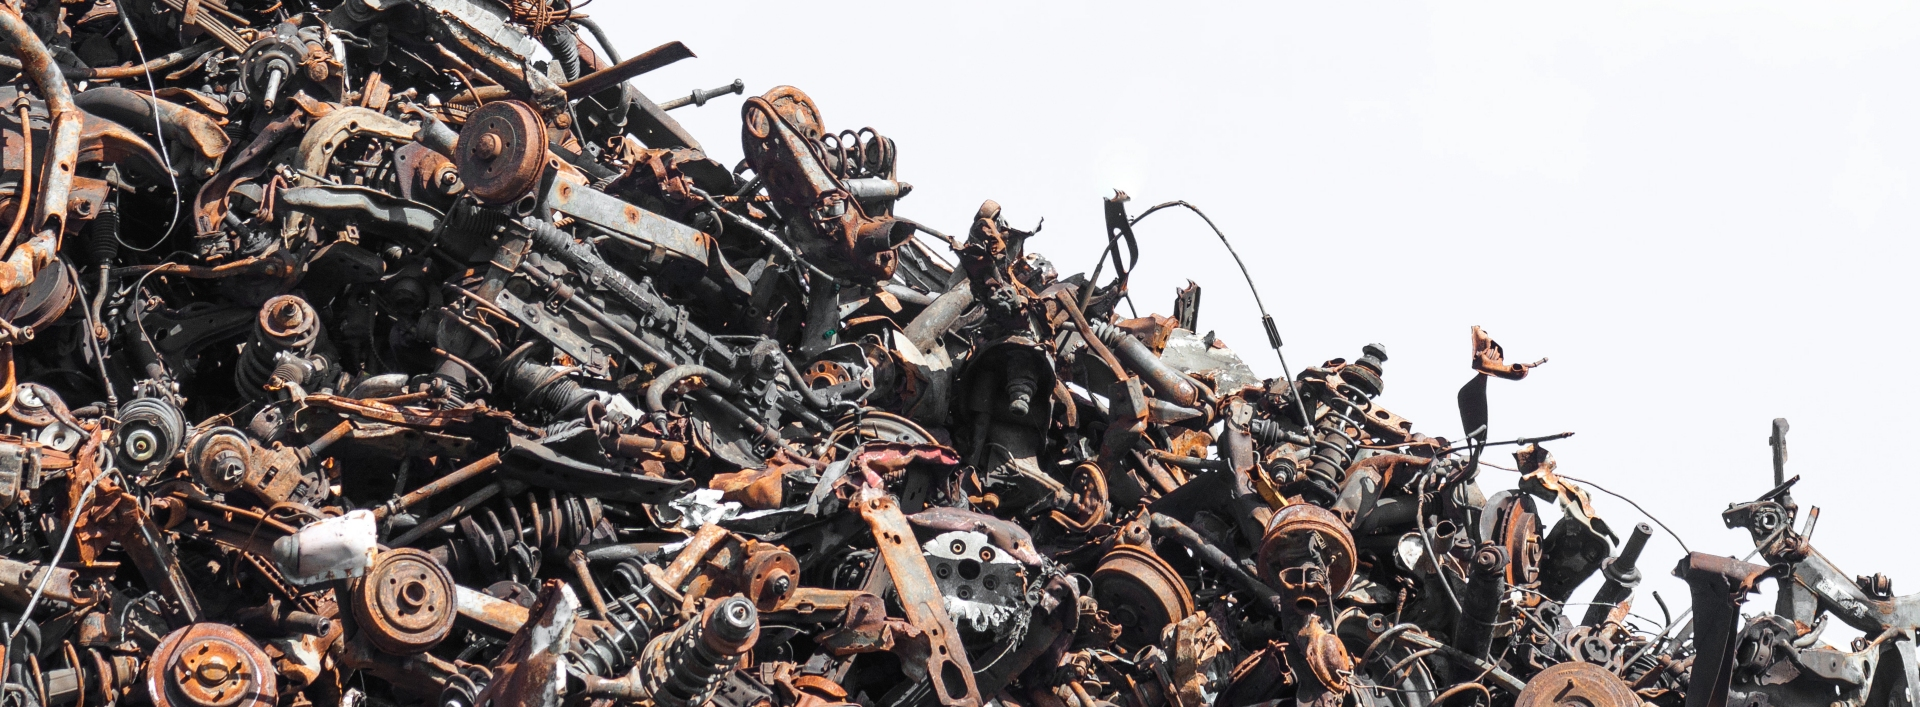 Scrap Metal Drive-In Bolton